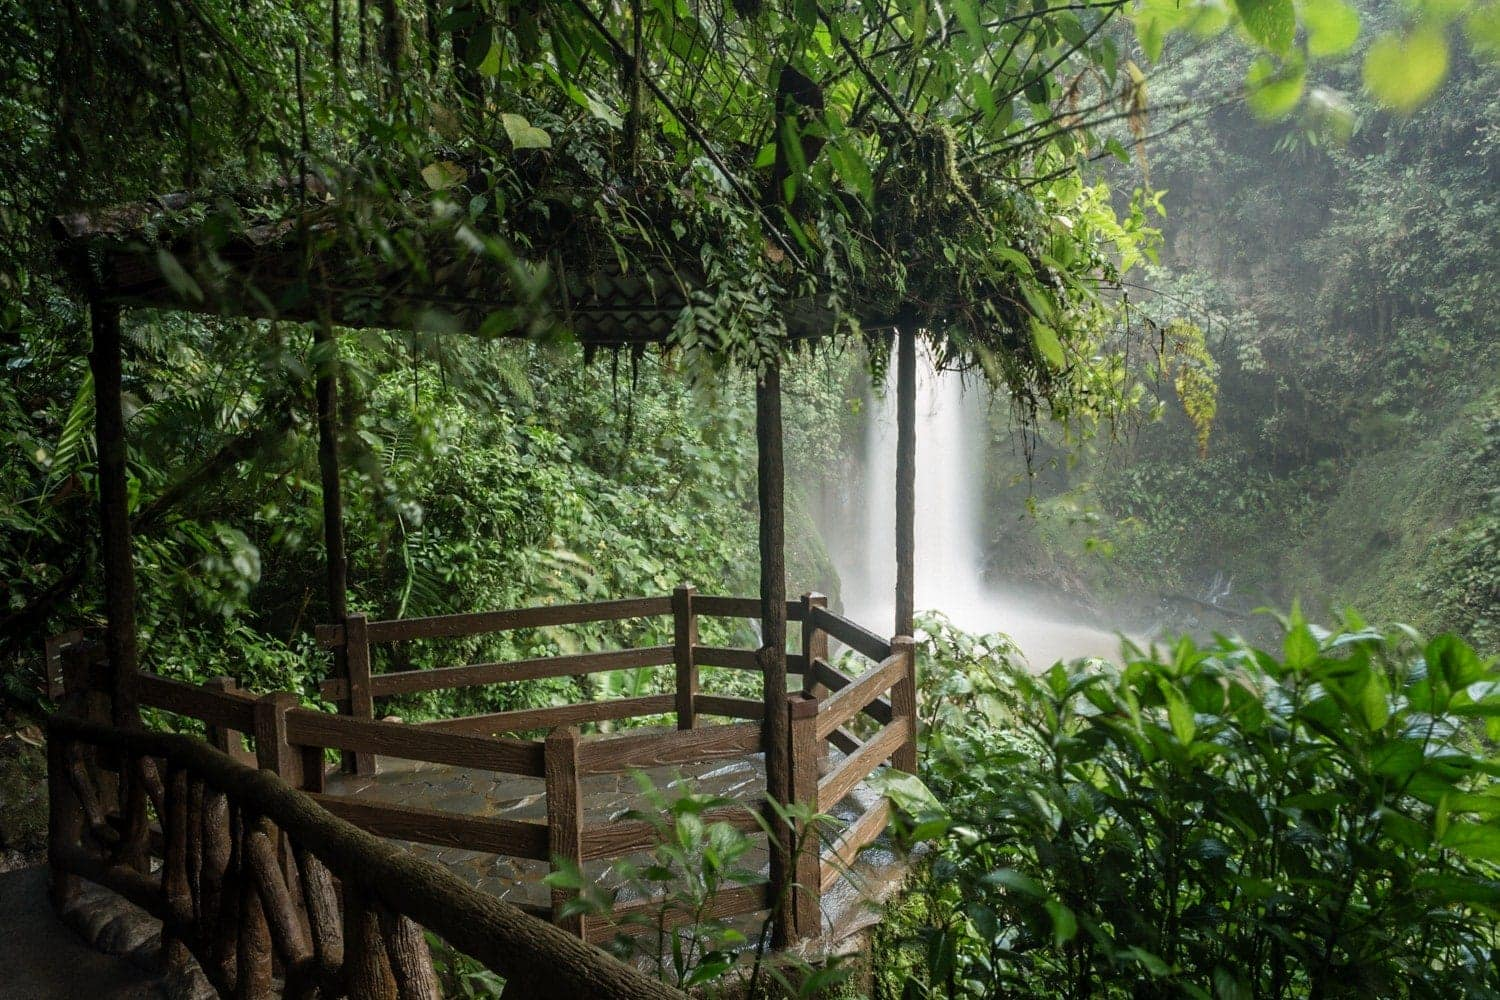 Gazebo in cloud forest with great views of waterfall.